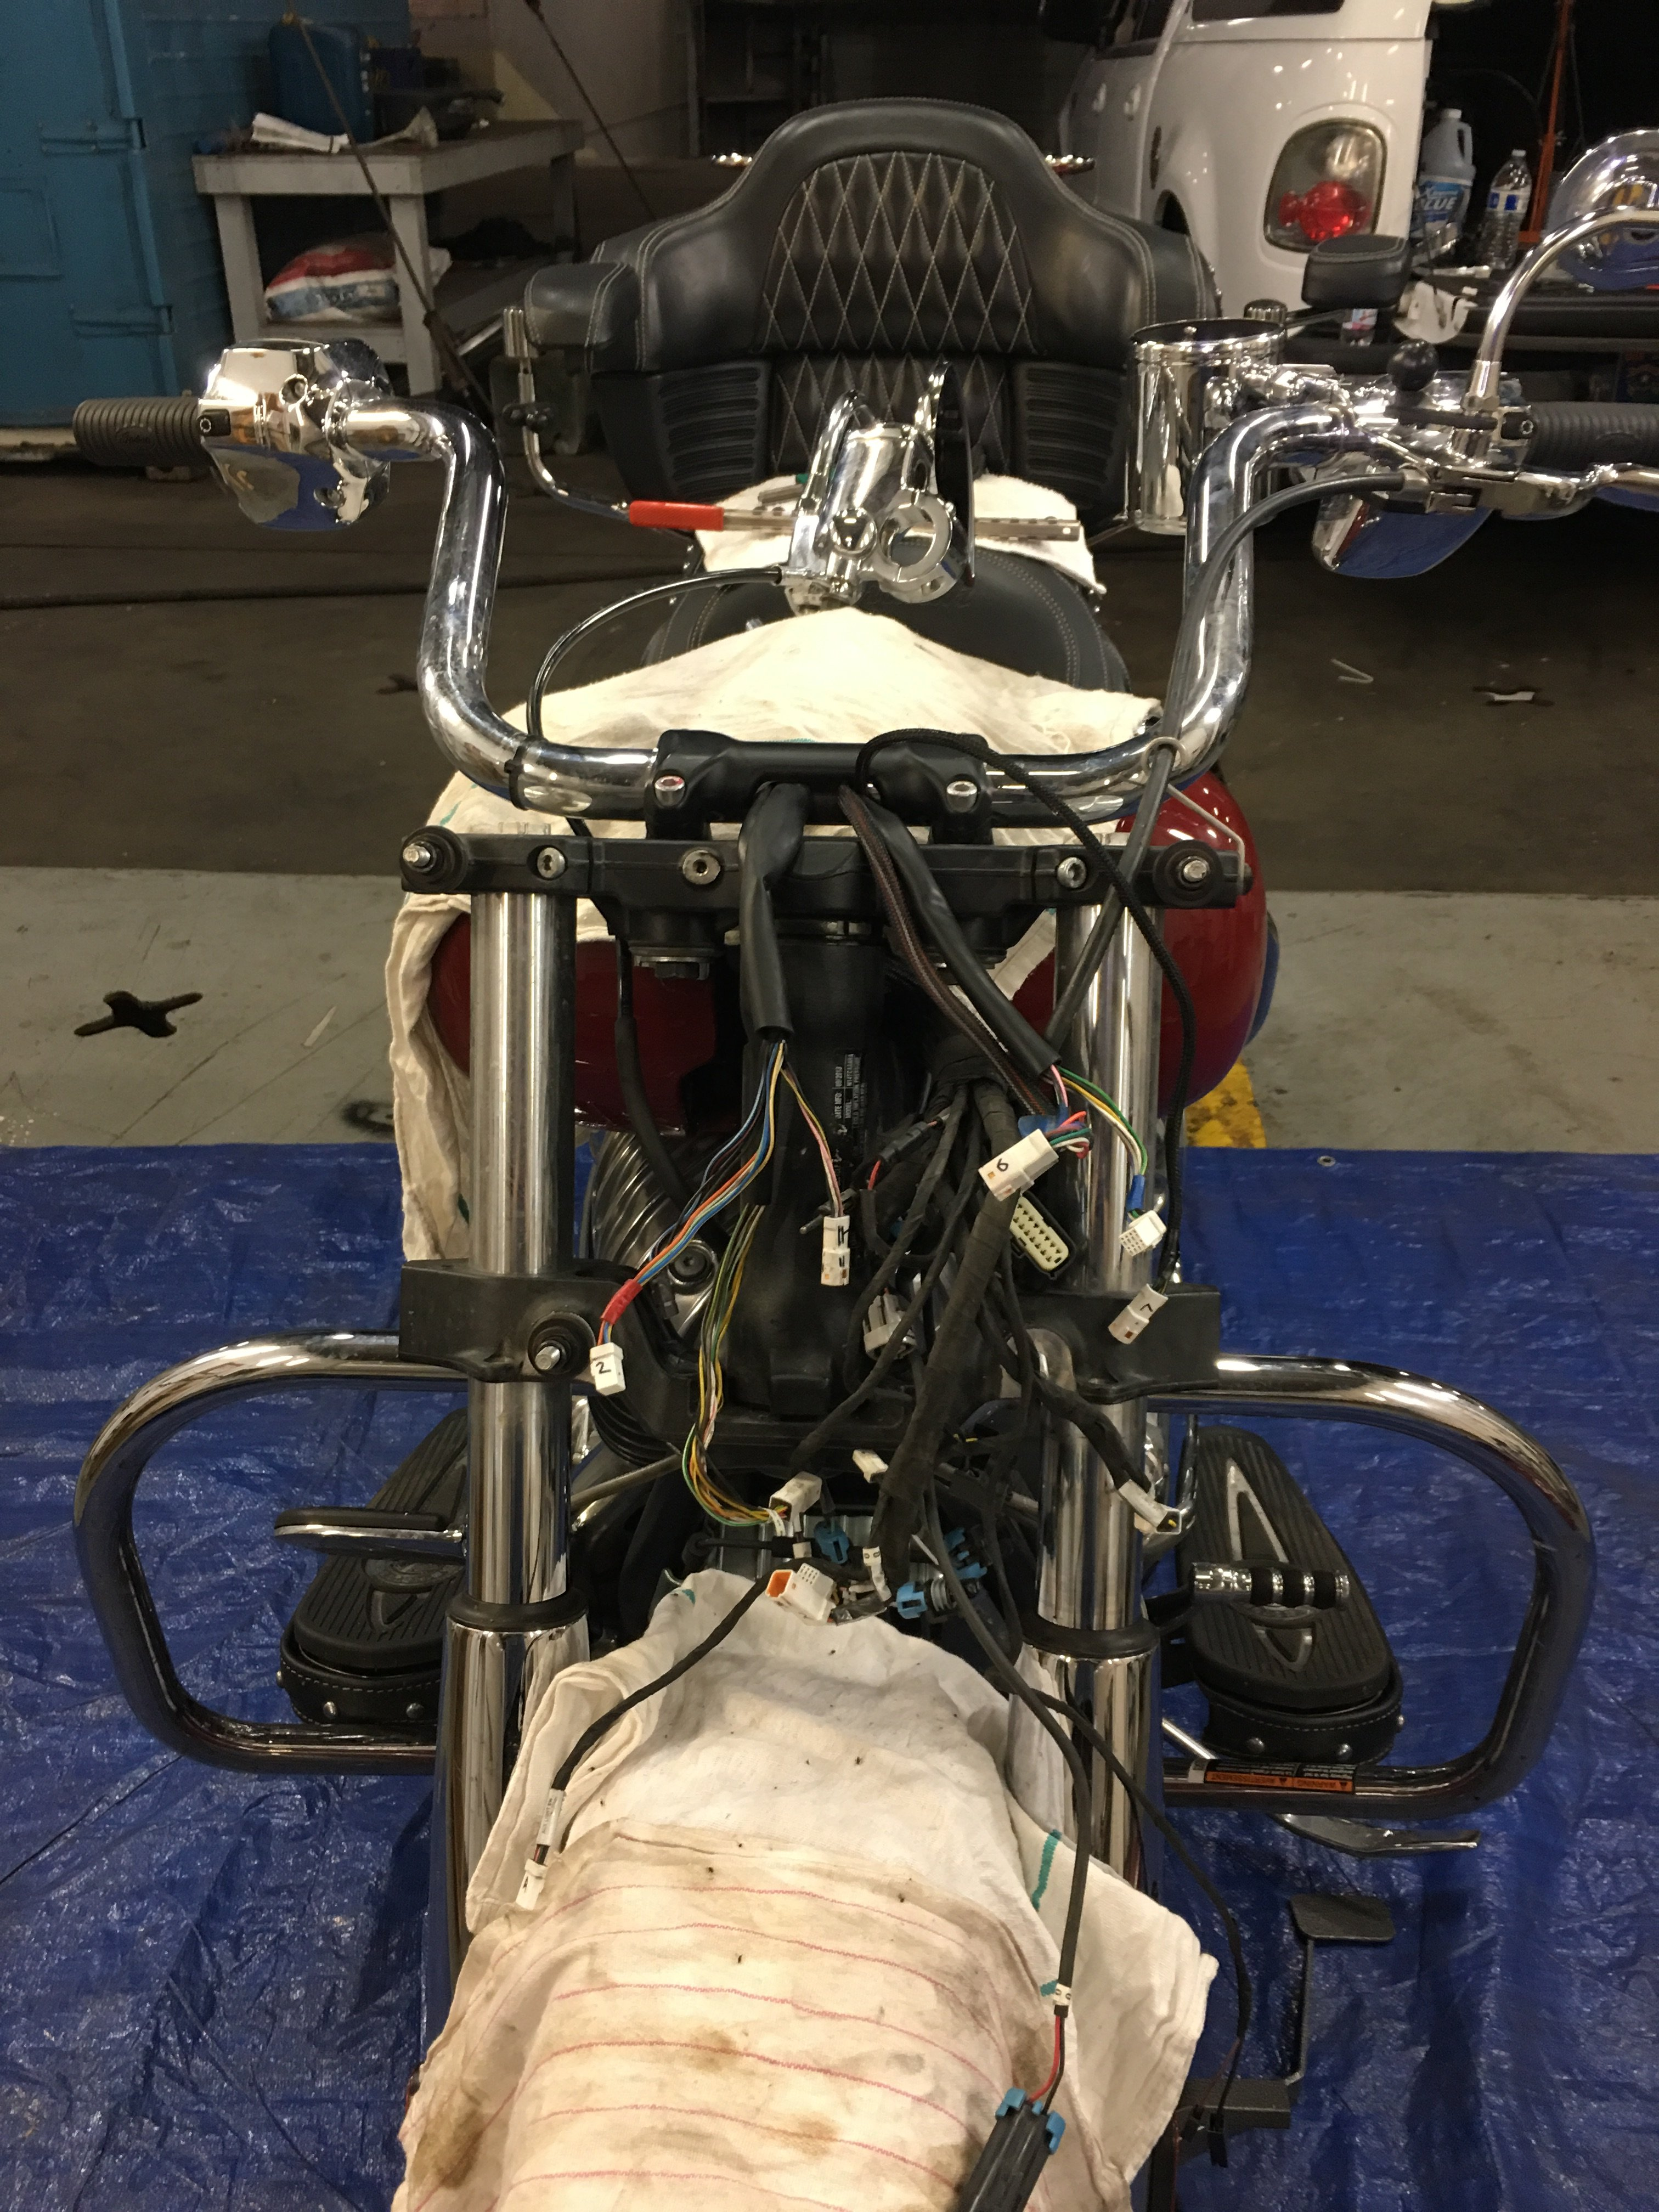 Heated Grips On 2014 Chieftain Page 5 Indian Motorcycle Forum Bmw Grip Wire Harness Without Fairing